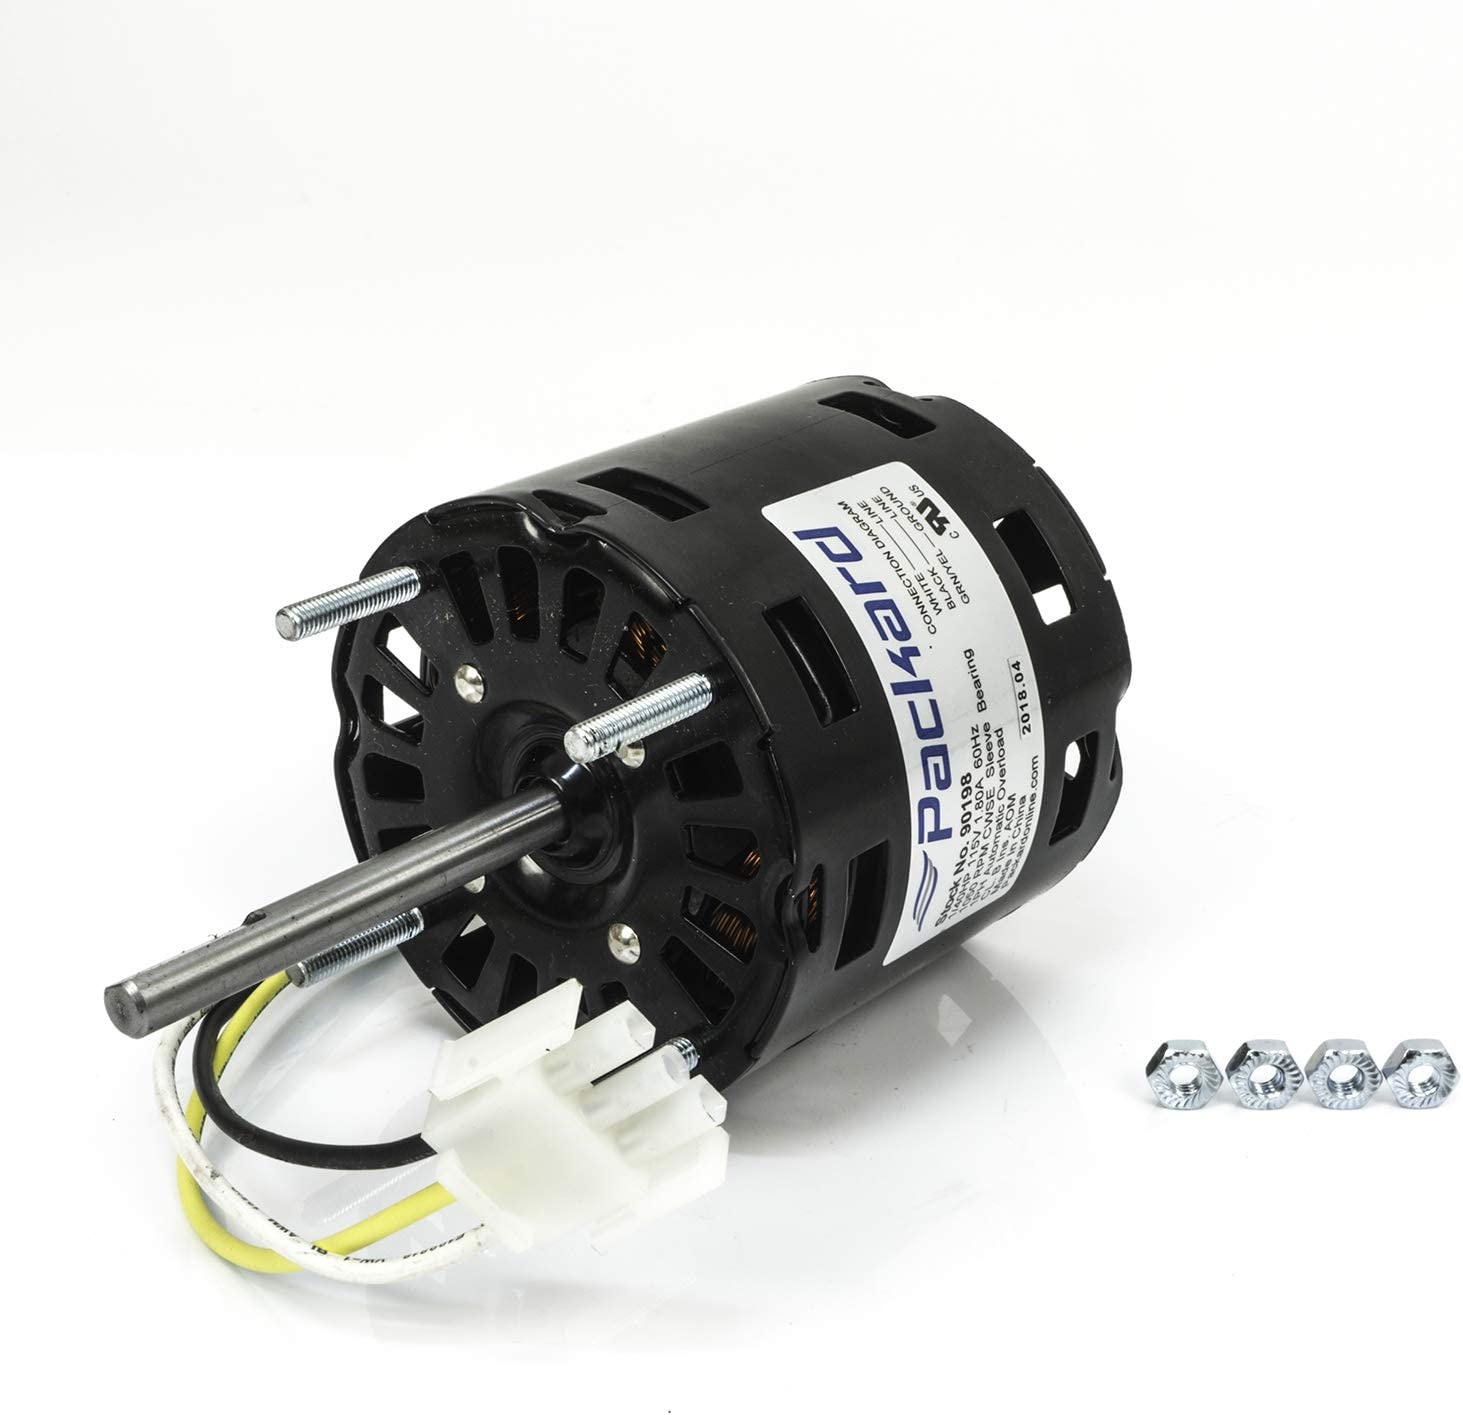 """Packard 90198 3.3"""" Dia. Motor 1/40 HP 115 Volts 1050 RPM Replaces Greenheck"""